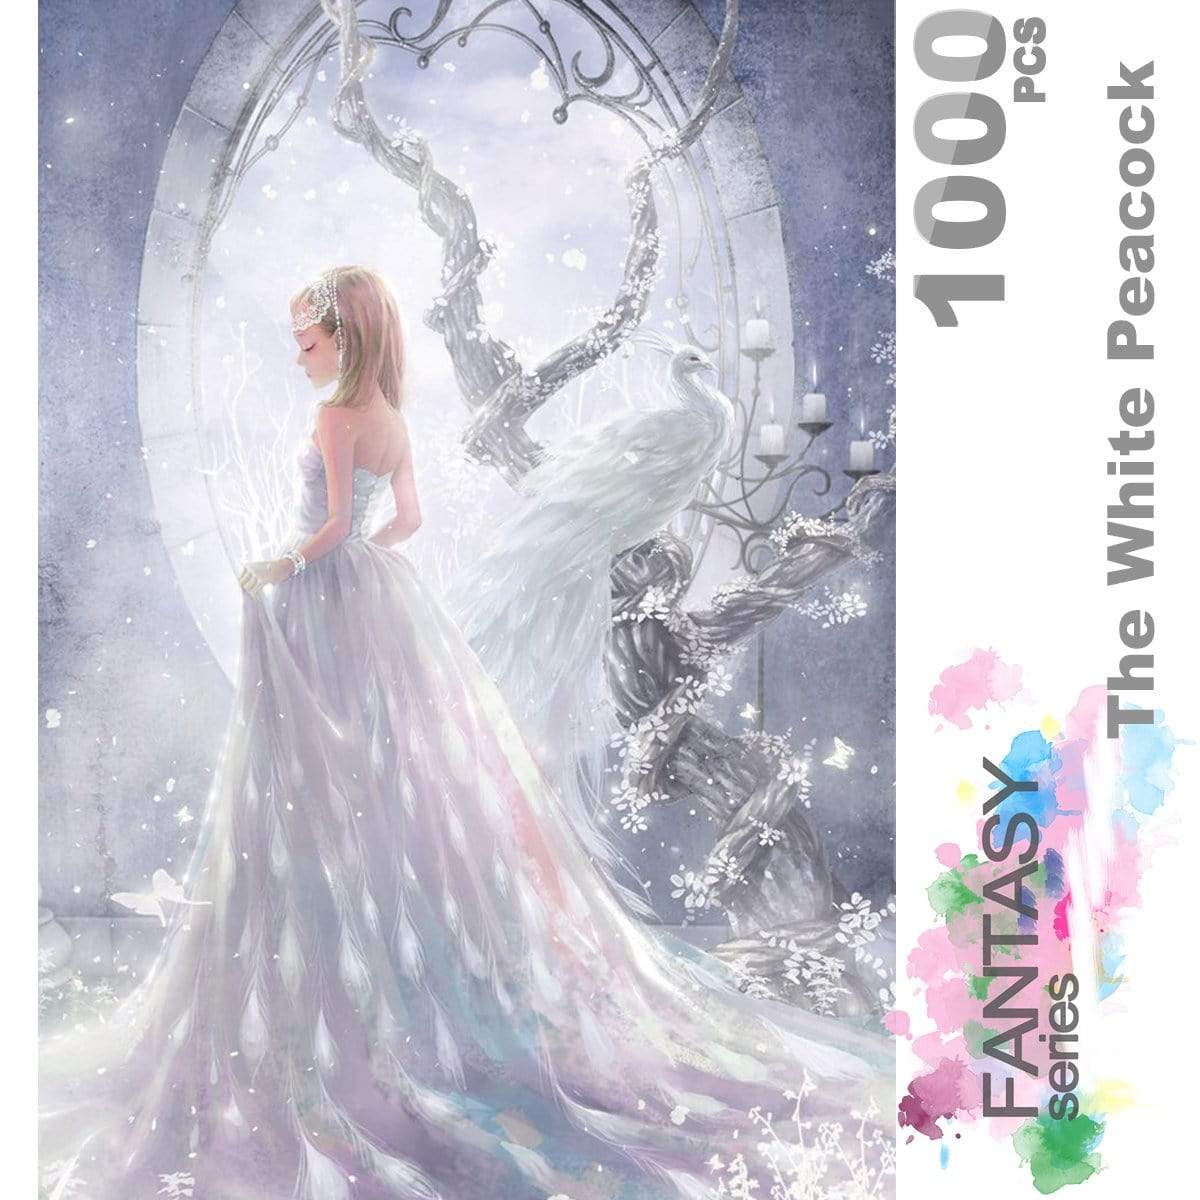 Ingooood Wooden Jigsaw Puzzle 1000 Pieces for Adult - The White Peacock - Ingooood